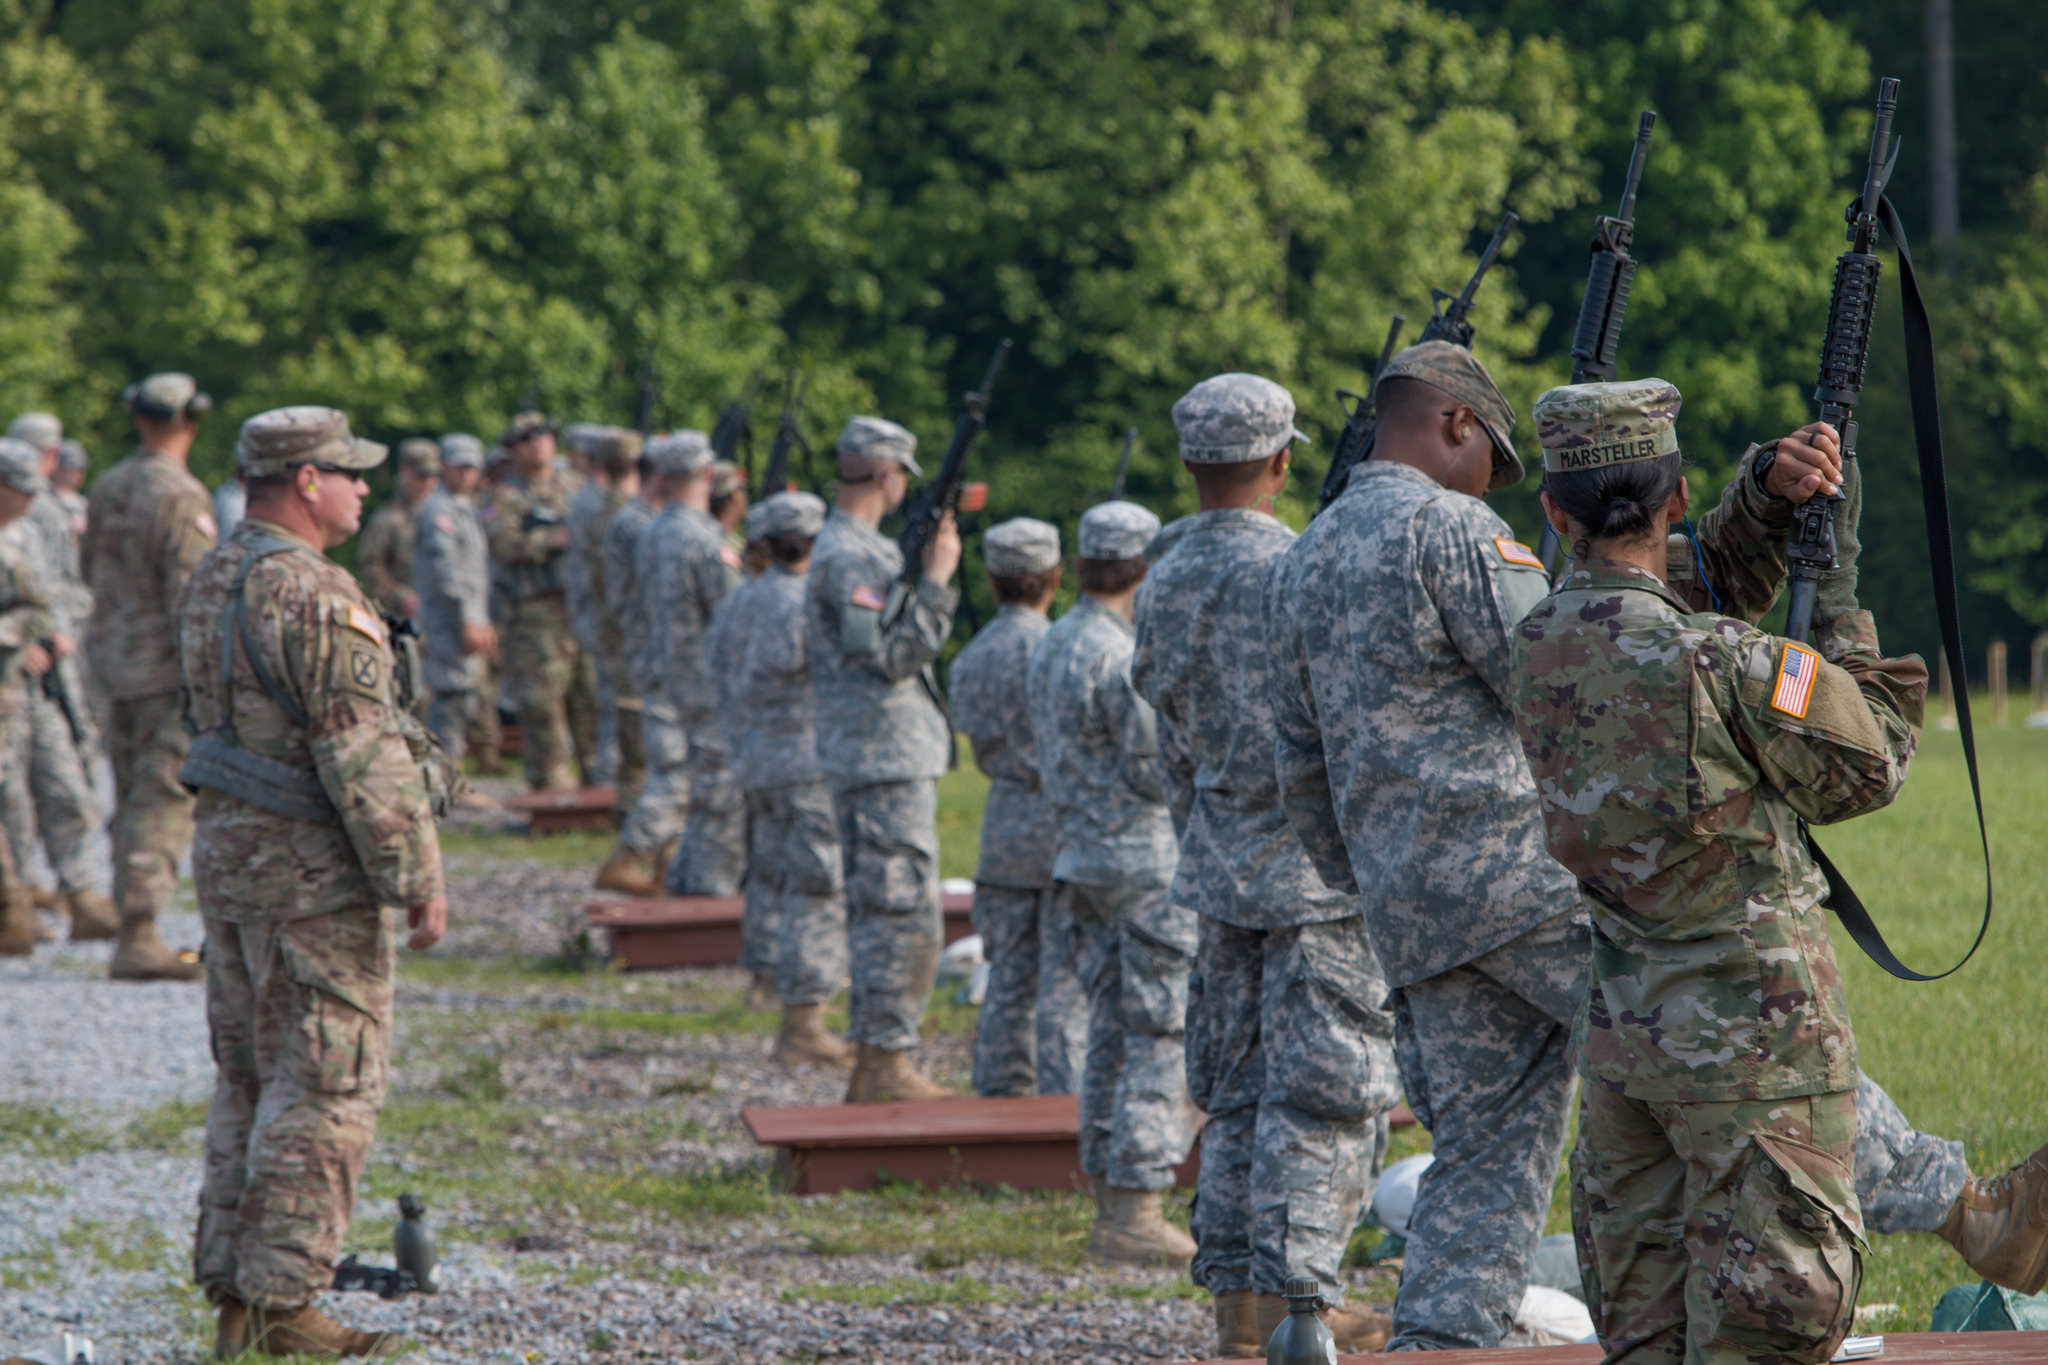 Basic Rifle Marksmanship: Cadets Get Familiar with Their Weapons